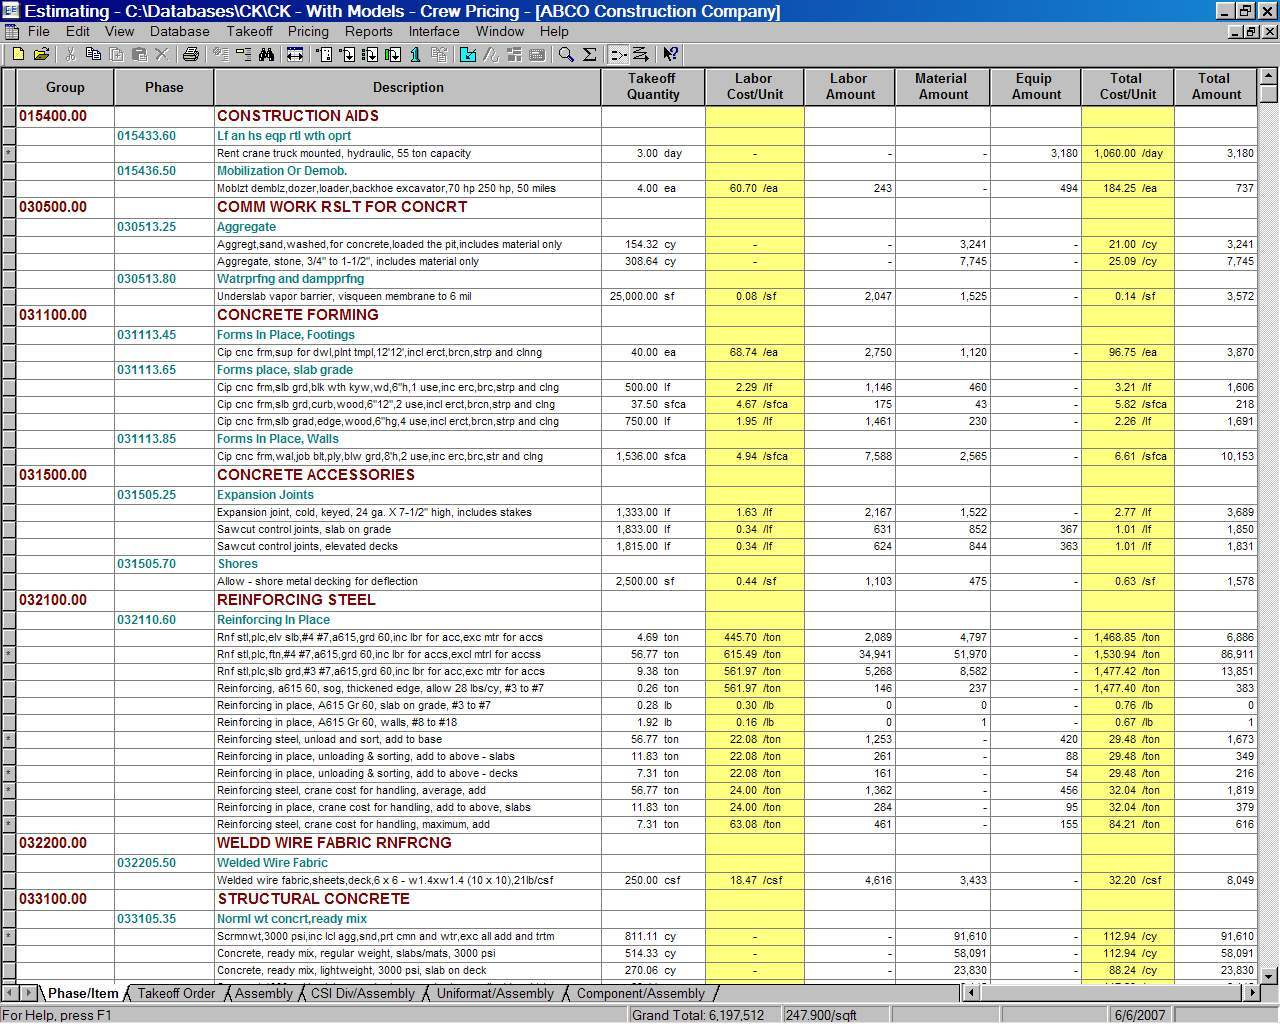 Contoh Timeline Project Excel Task Tracking Spreadsheet Template Spreadsheet Templates for Busines Spreadsheet Templates for Busines Project Timeline Excel Template Free